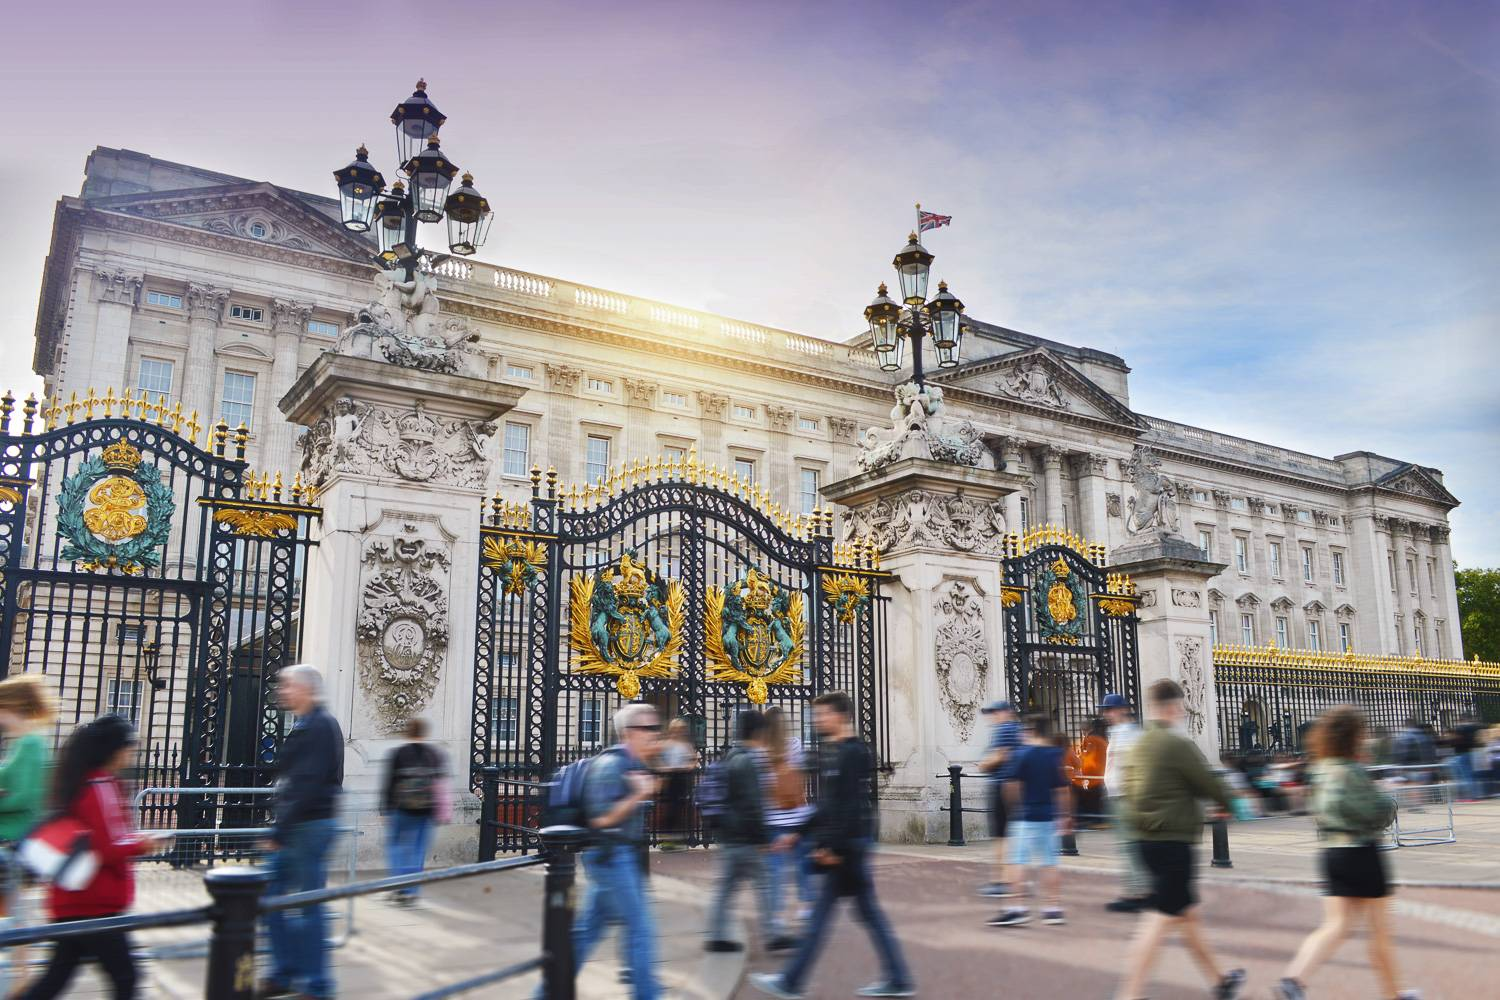 An image of Buckingham Palace as locals and tourists stroll through the city.